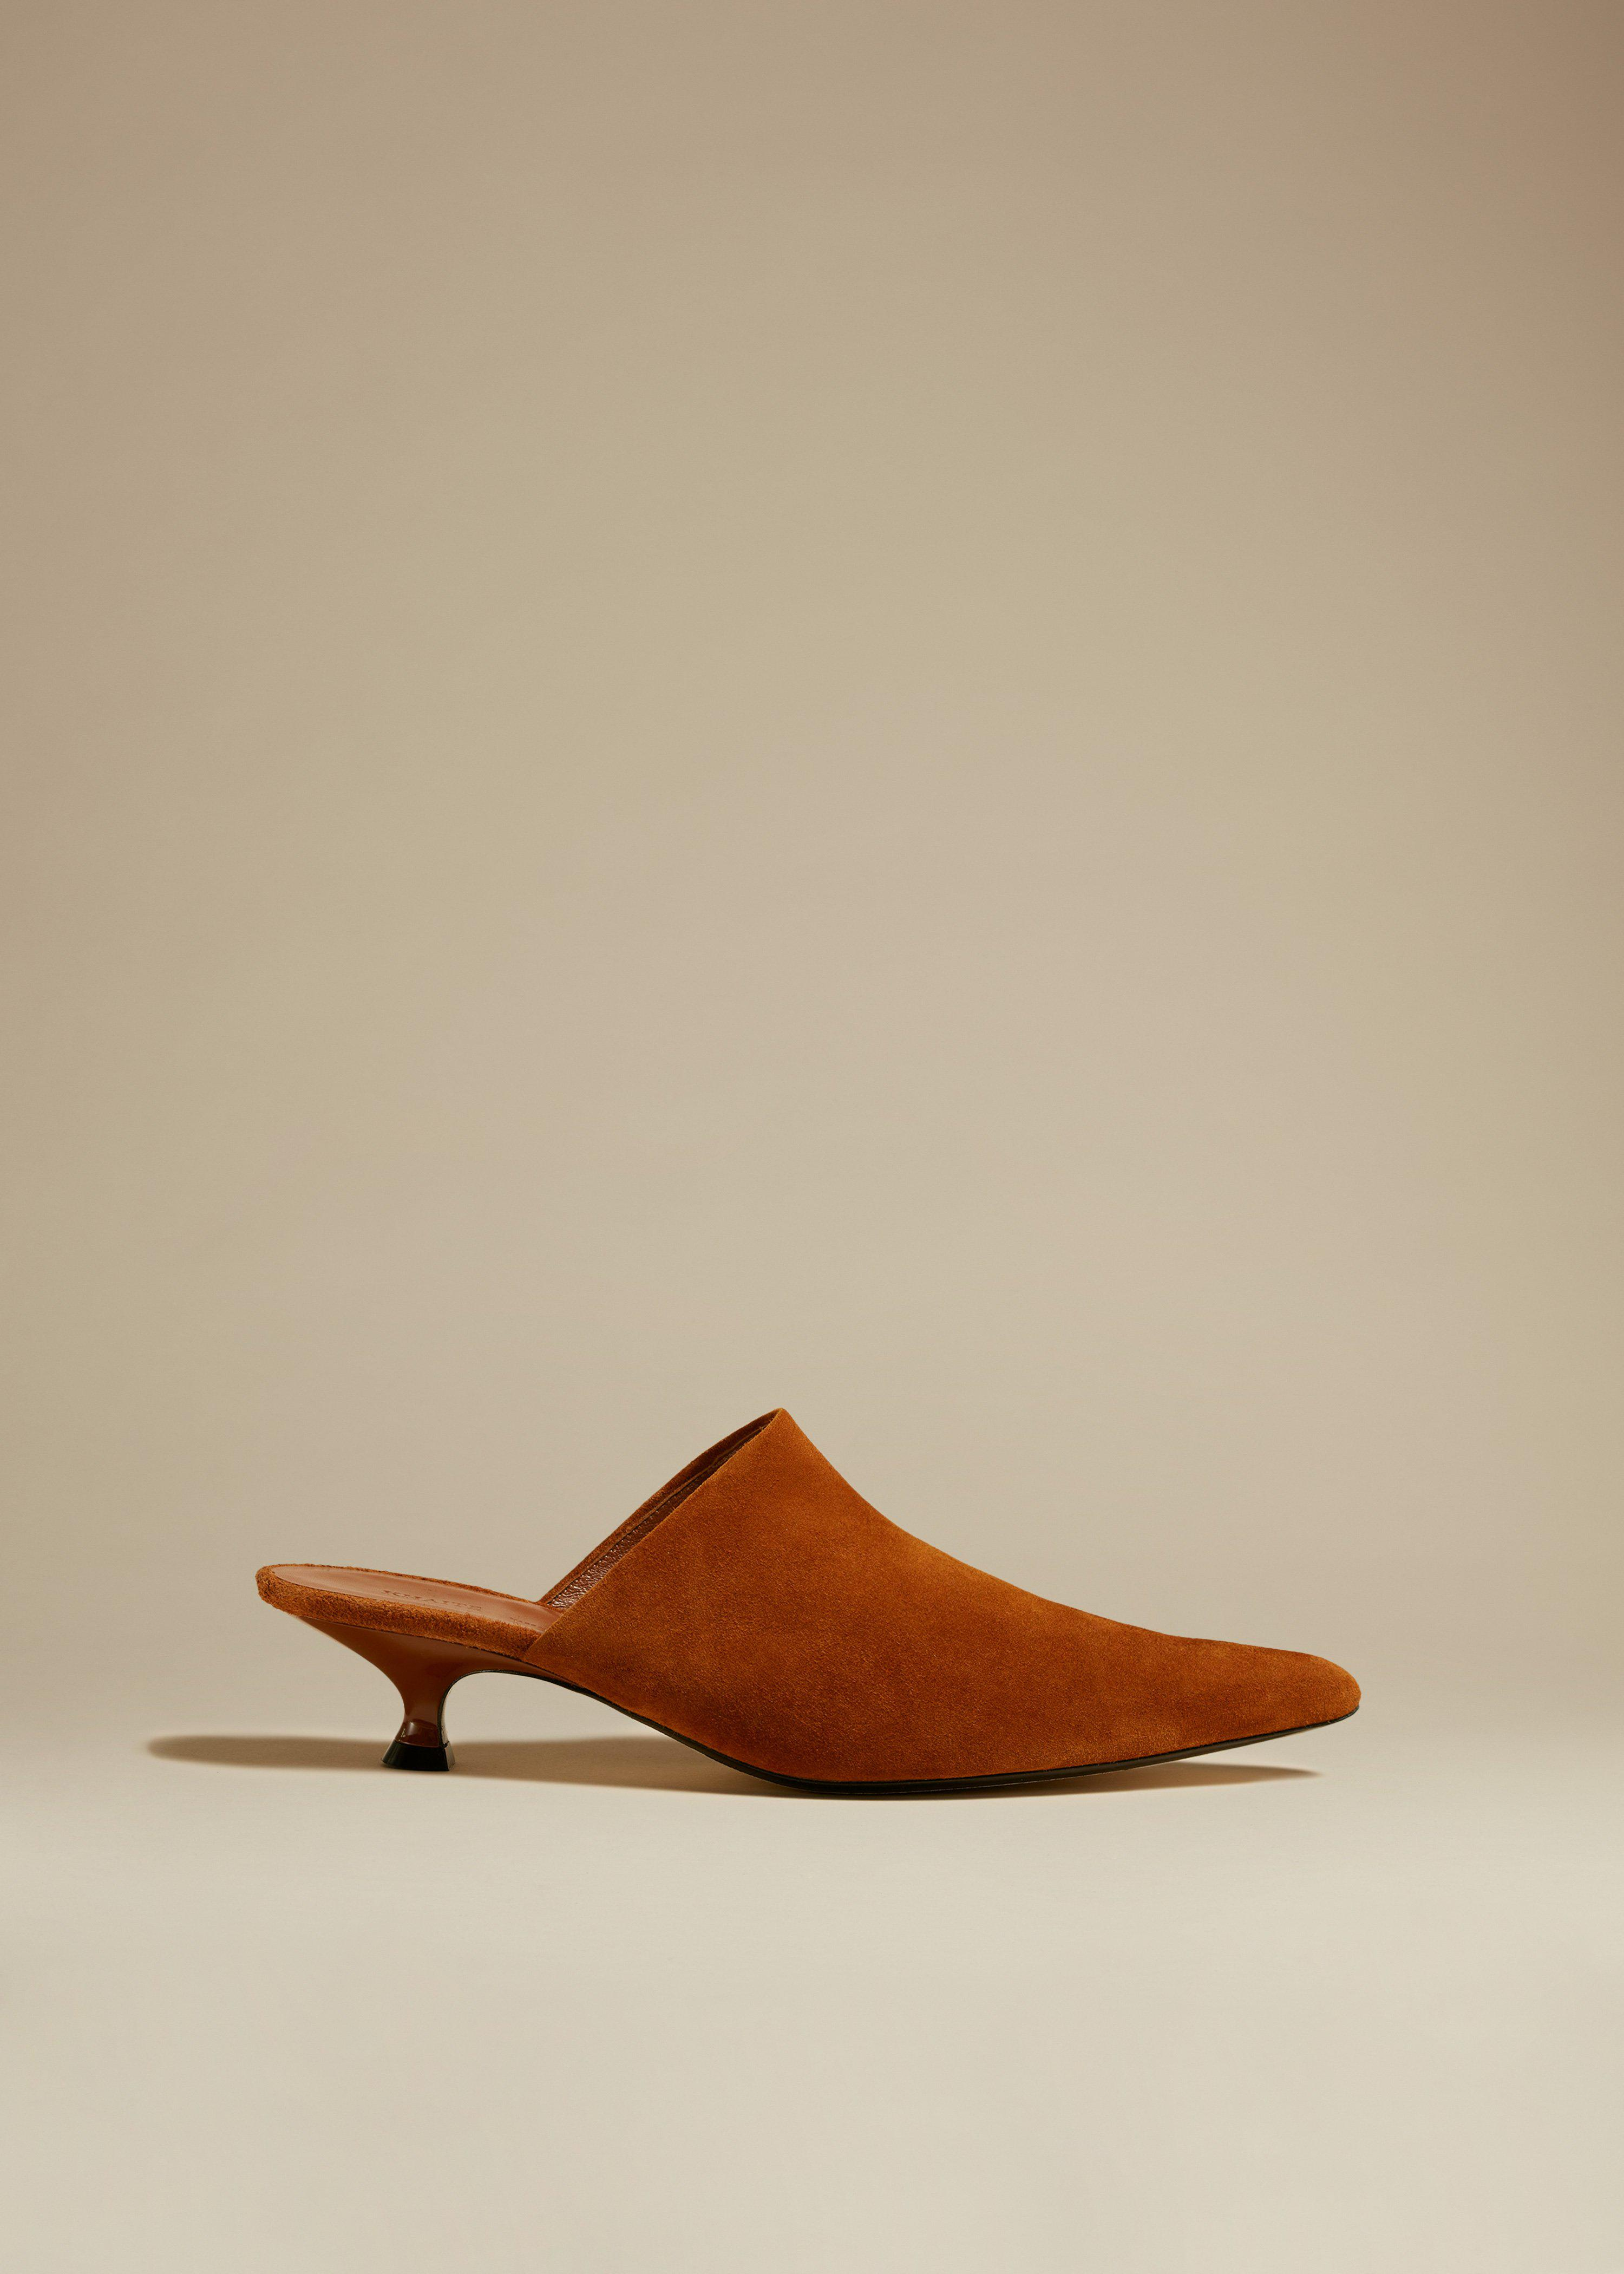 The Volosa Mule in Caramel Suede